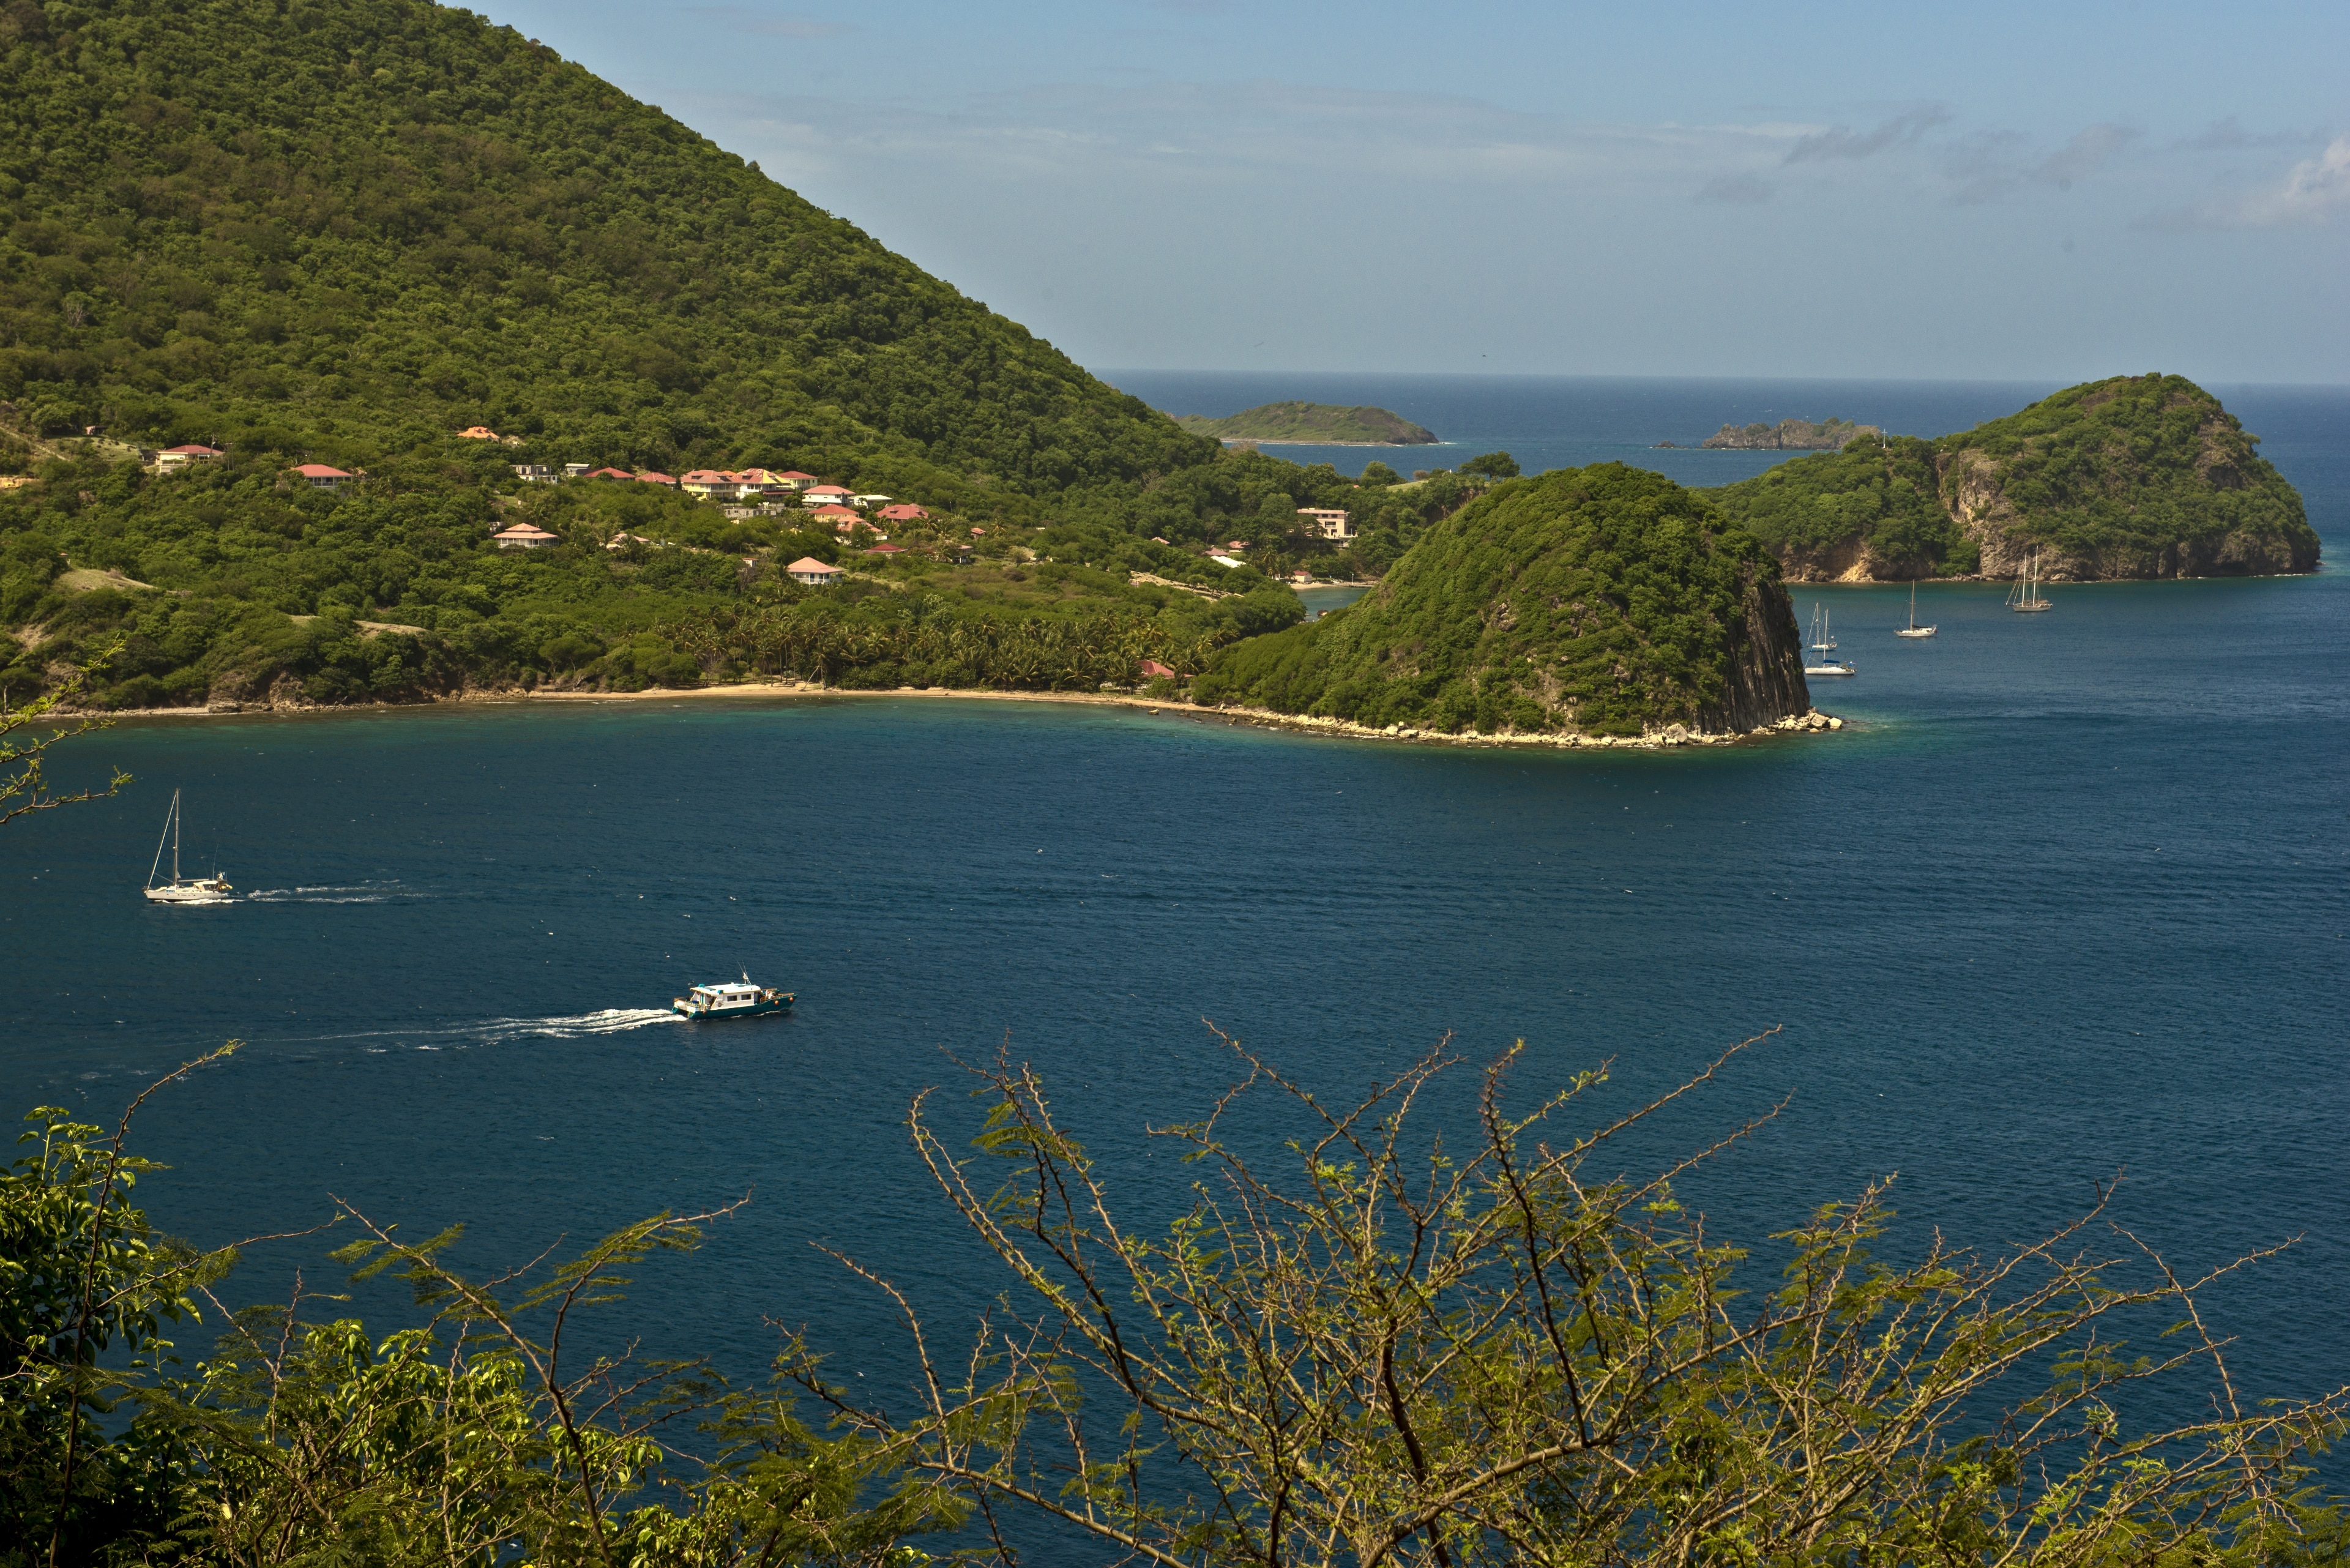 Nord Basse-Terre, Basse-Terre Island, Guadeloupe